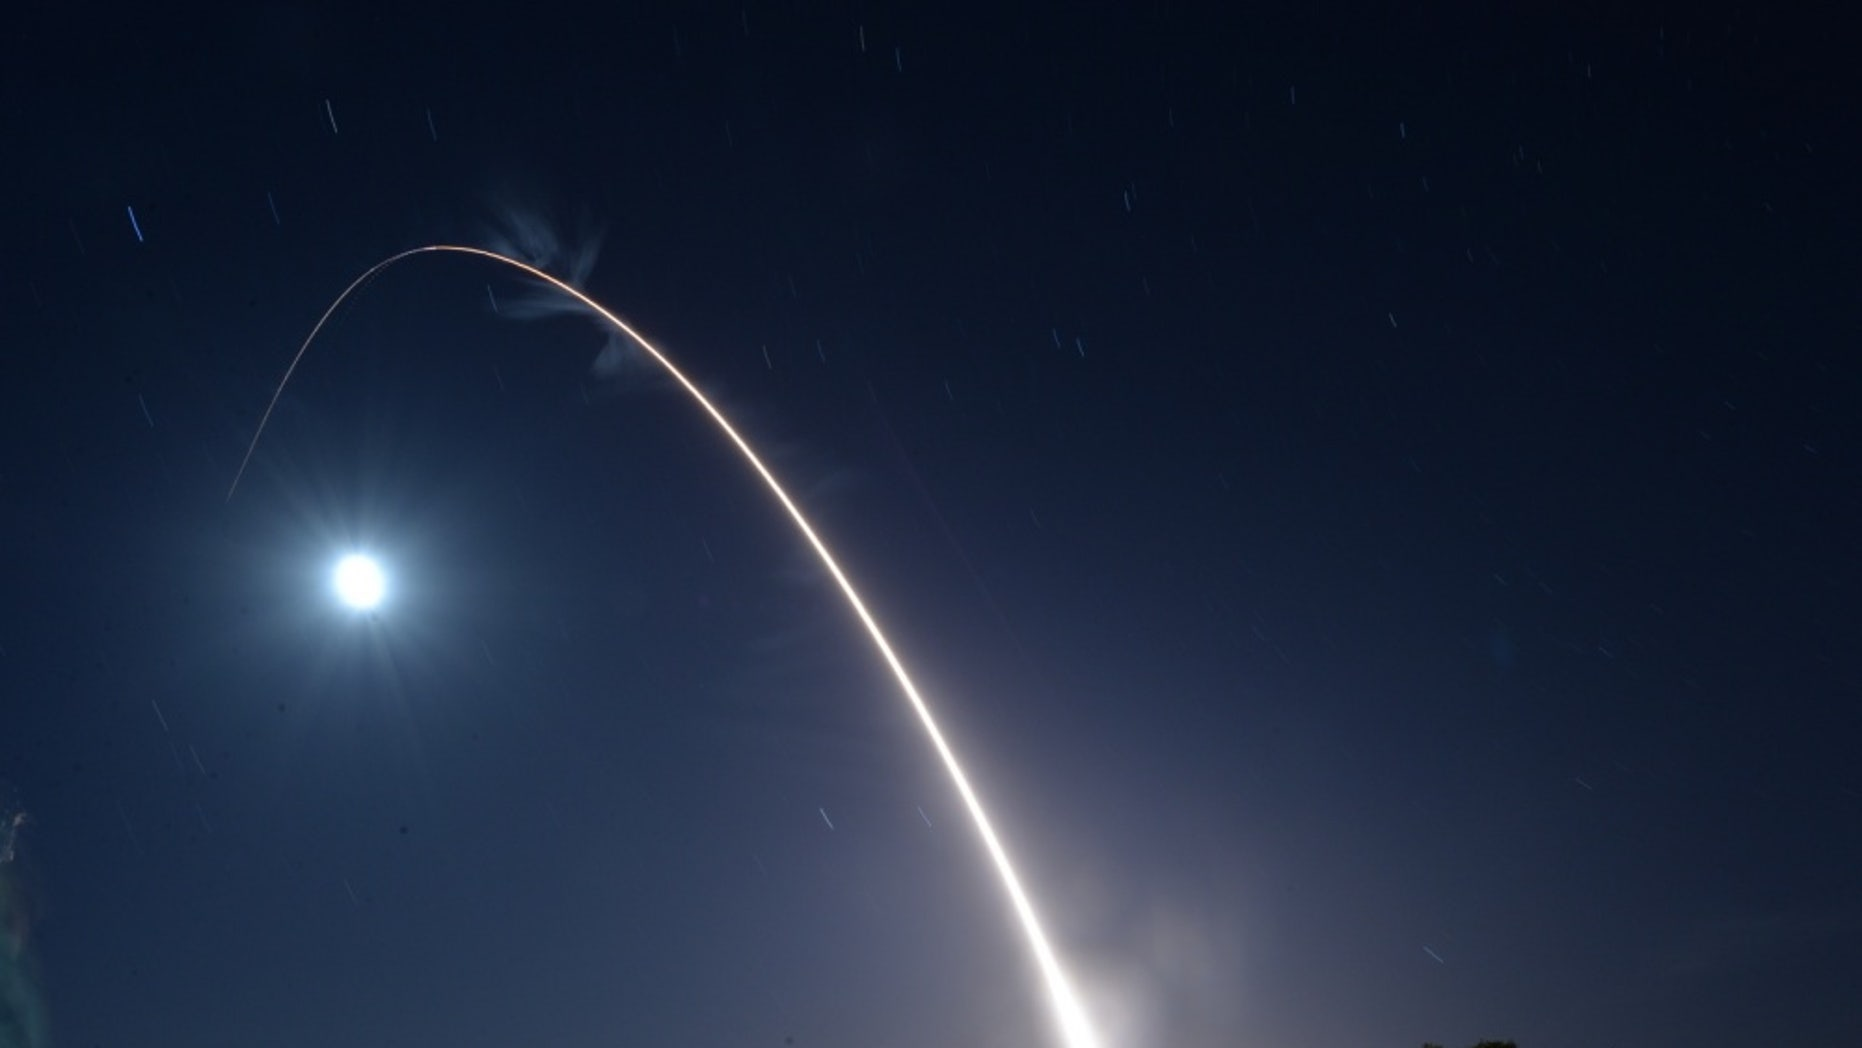 File photo - An unarmed U.S. Air Force Minuteman III intercontinental ballistic missile launches during an operational test May 3, 2017, at Vandenberg Air Force Base, Calif. (U.S. Air Force photo by Airman 1st Class Daniel Brosam)